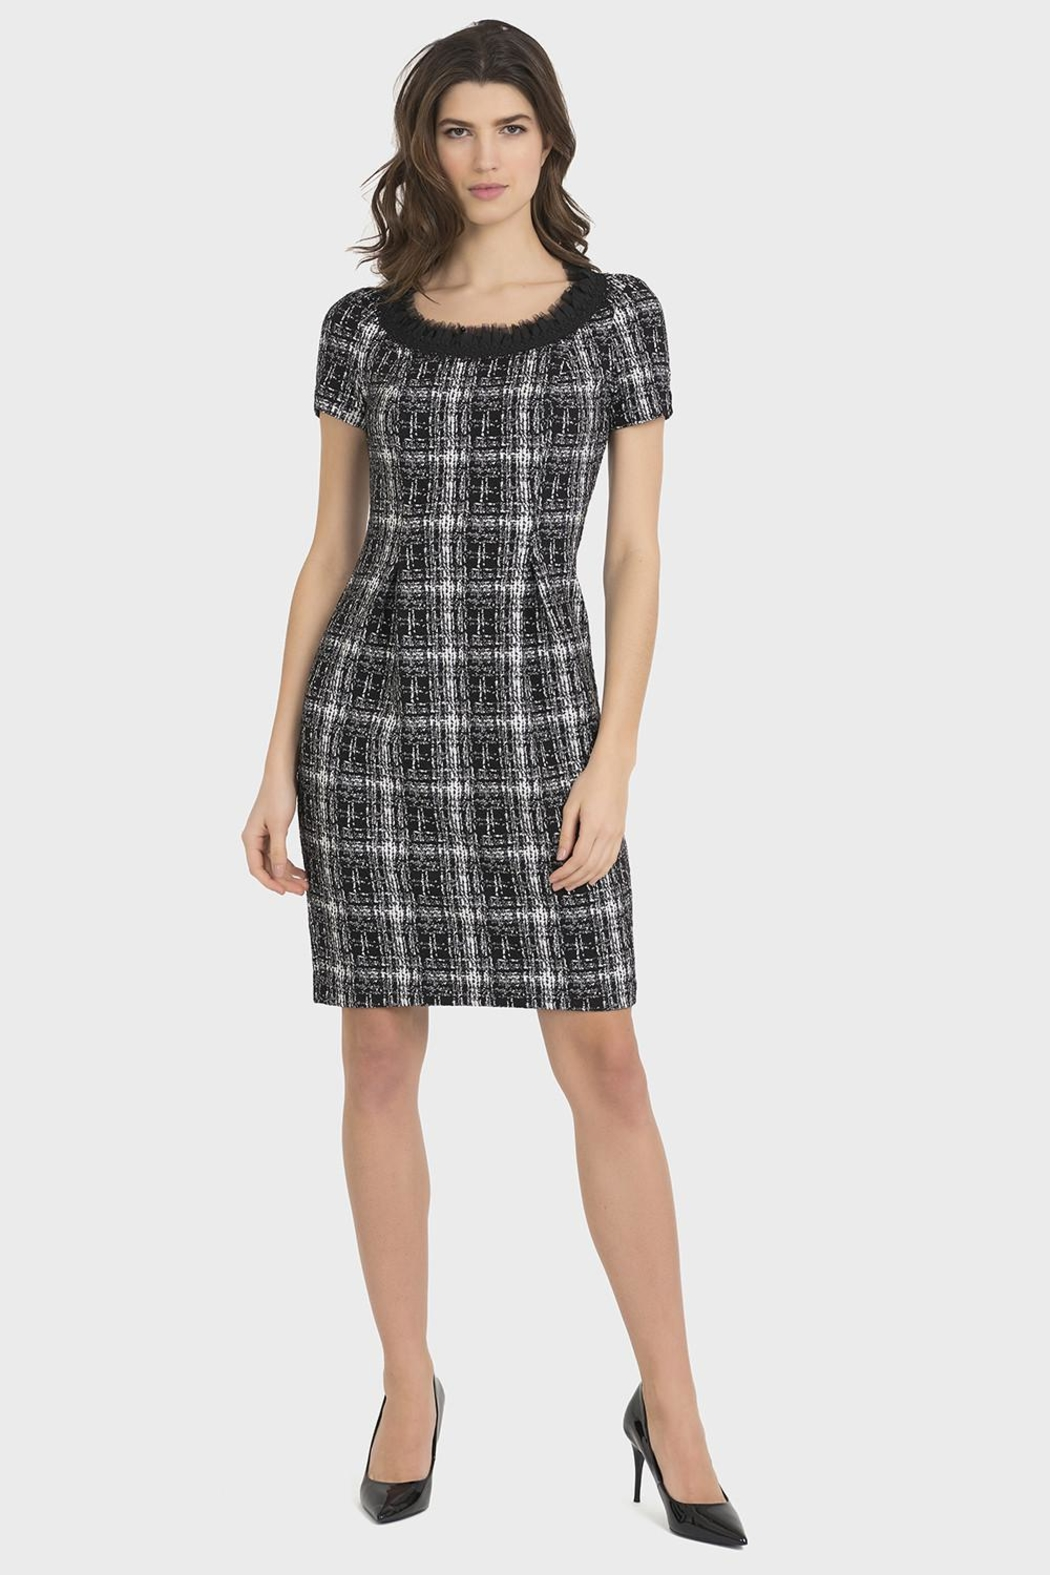 Joseph Ribkoff Black/white Dress - Main Image